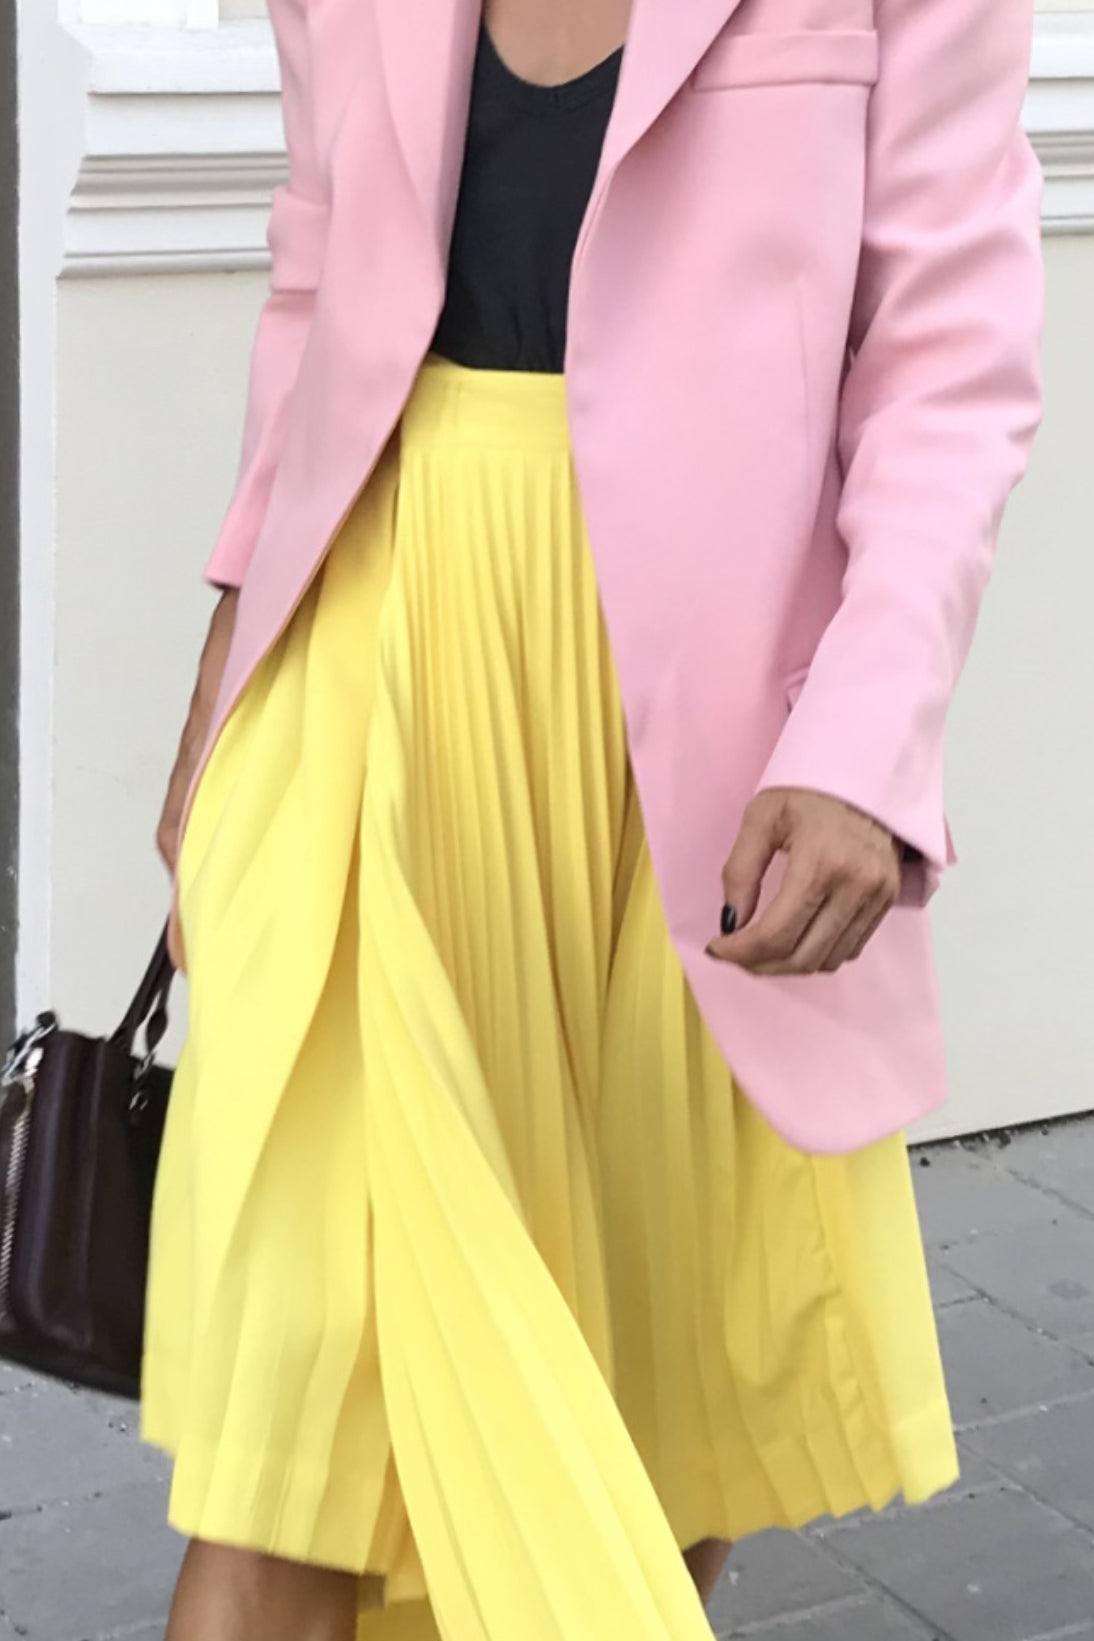 Sorbet Dreams Skirt